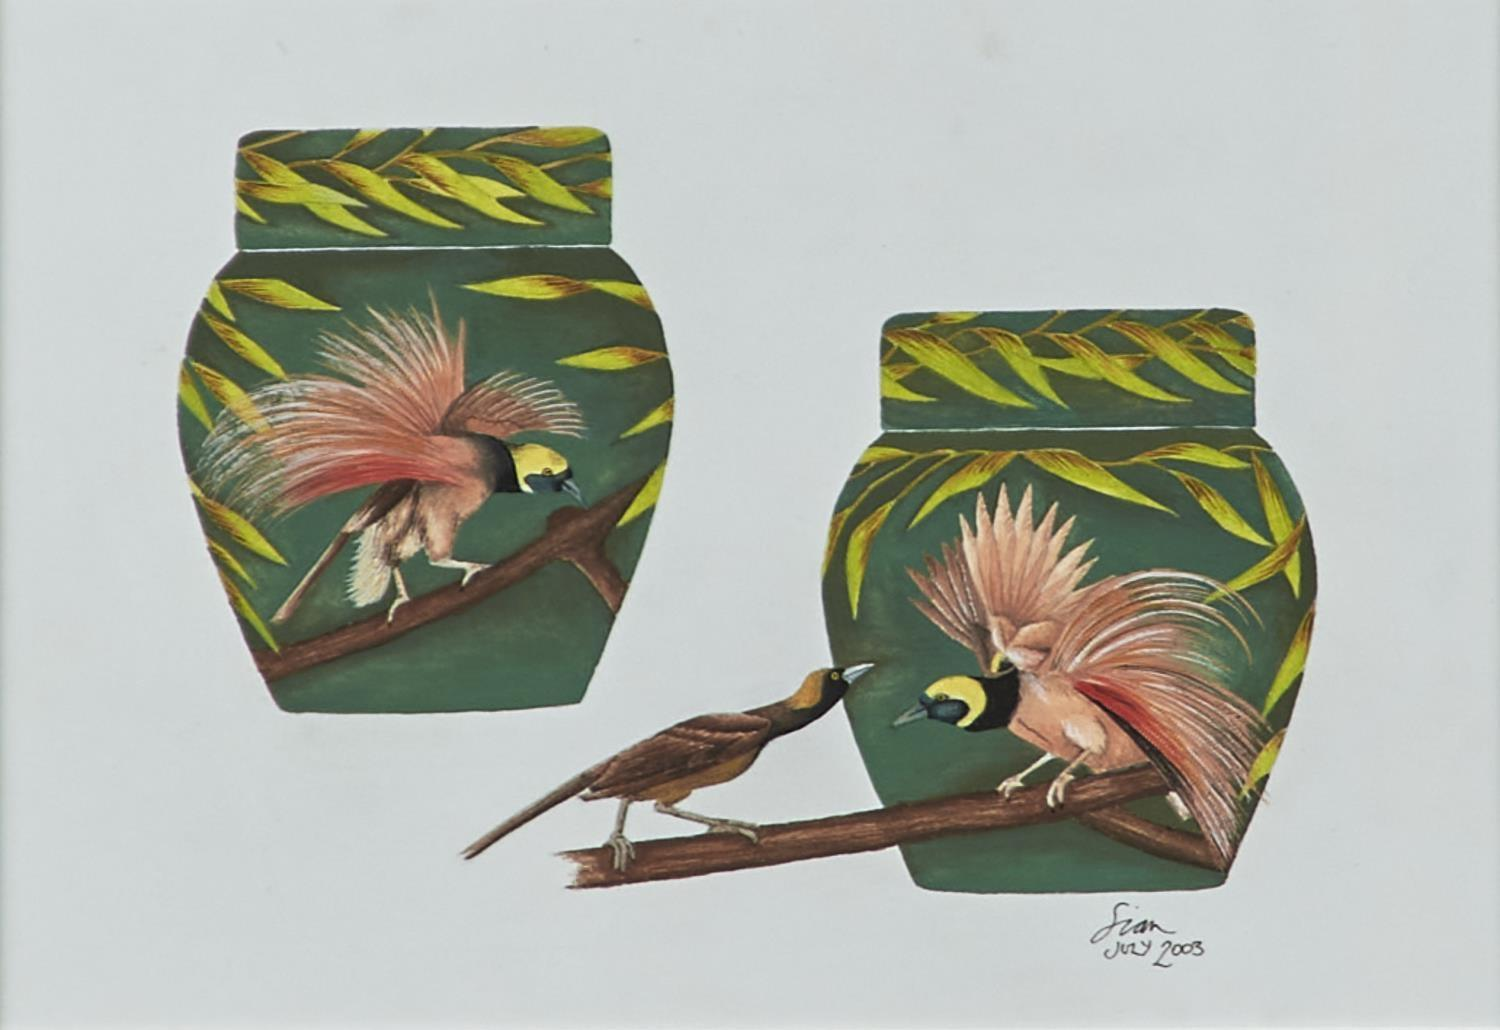 SIAN LEEPER - BIRD OF PARADISE, DESIGN FOR MOORCROFT, SIGNED AND DATED JULY 2003, GOUACHE, 14 X 20CM